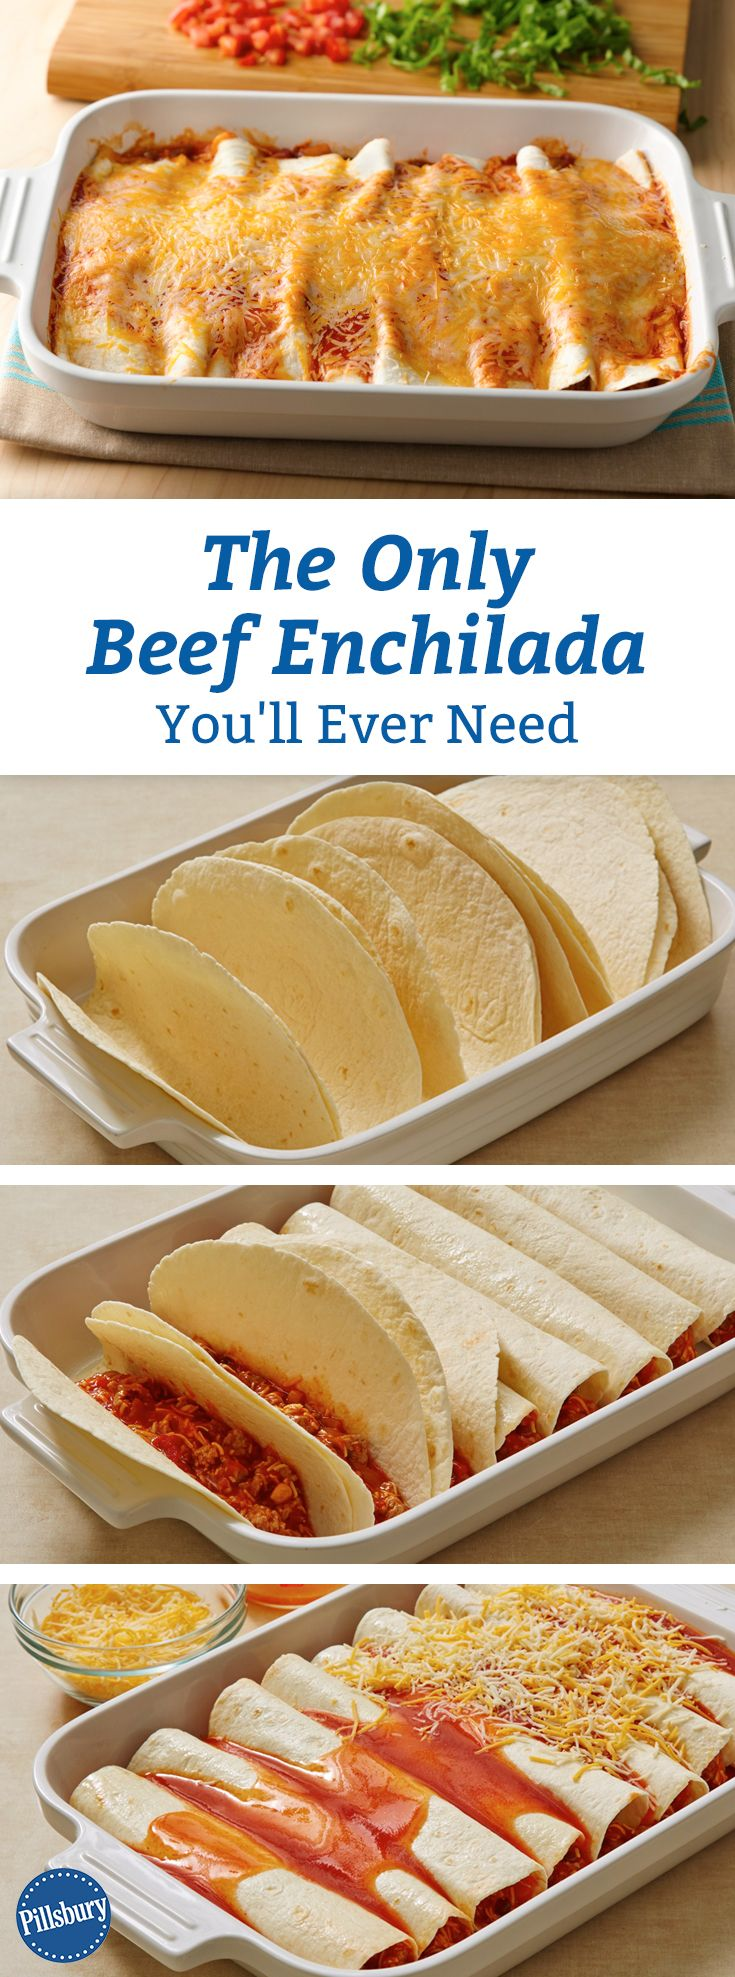 The Only Beef Enchiladas Recipe You'll Ever Need: Easy meal planning tip: Make these 5-ingredient enchiladas for dinner once a week until the end of time. (Or until you're sick of Mexican food—whichever comes first.)